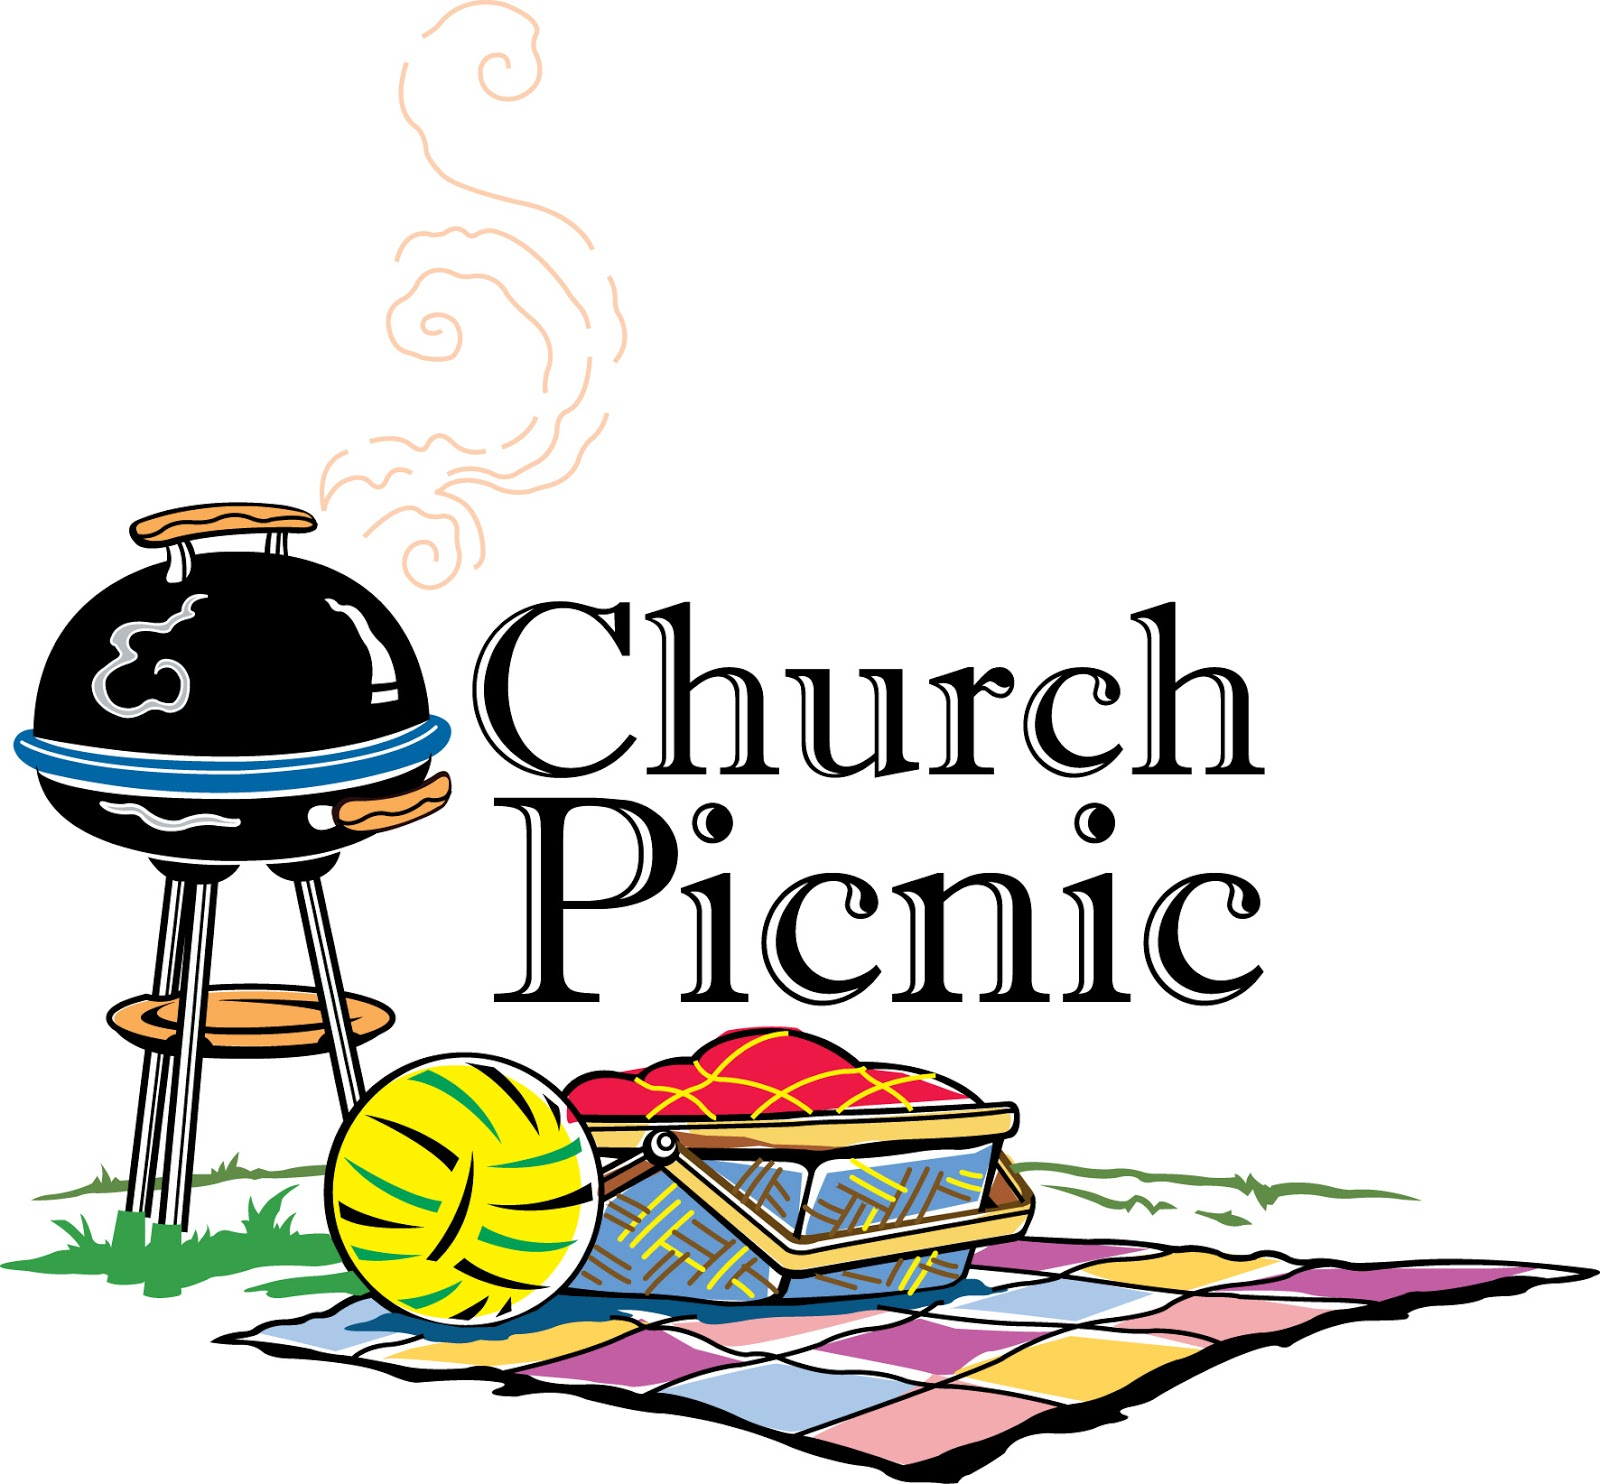 Grilling clipart group picnic. Church images panda free